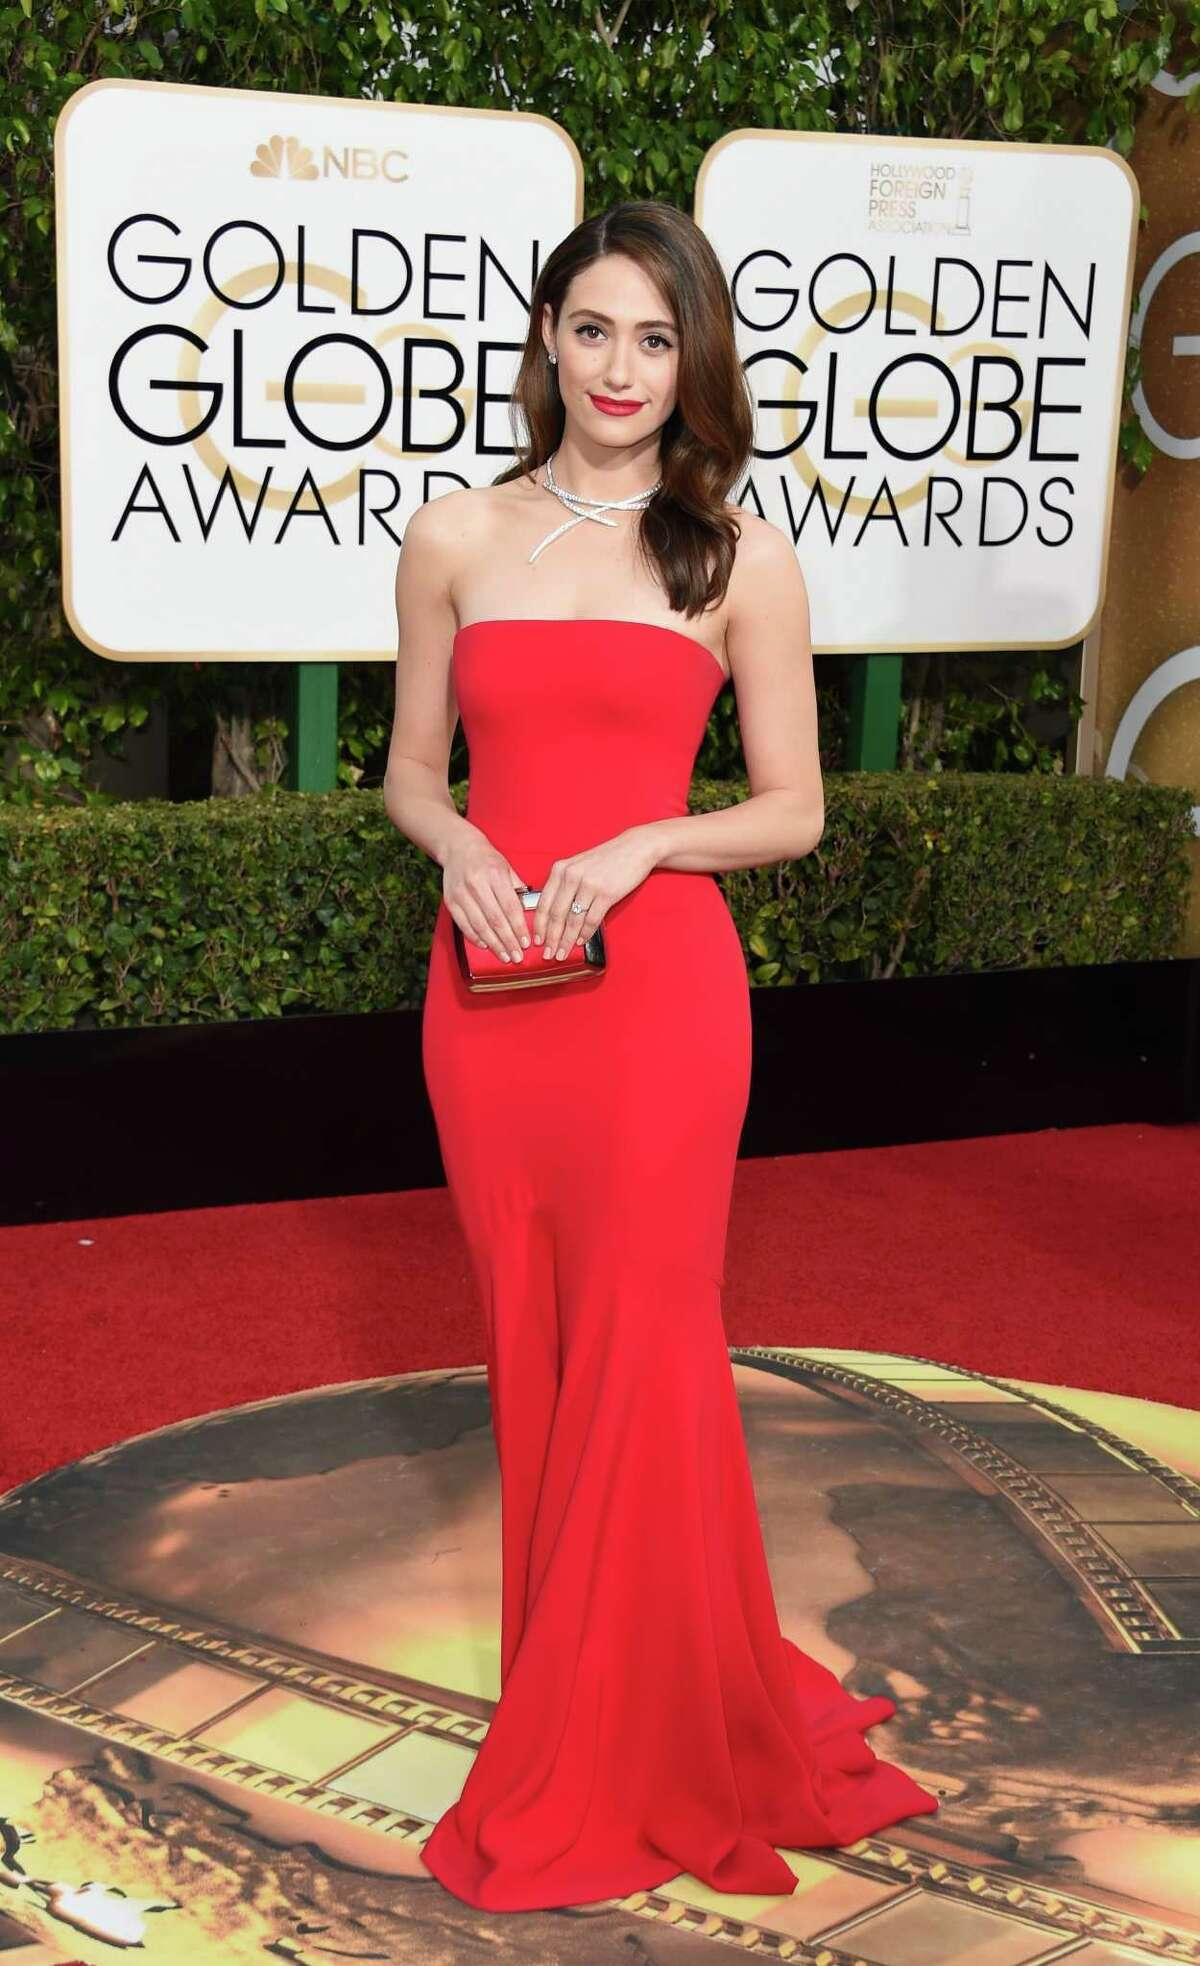 Emmy Rossum - Best Simple and stunning. Finally, a dress that doesn't call to mind Vick's Vapo-Rub.